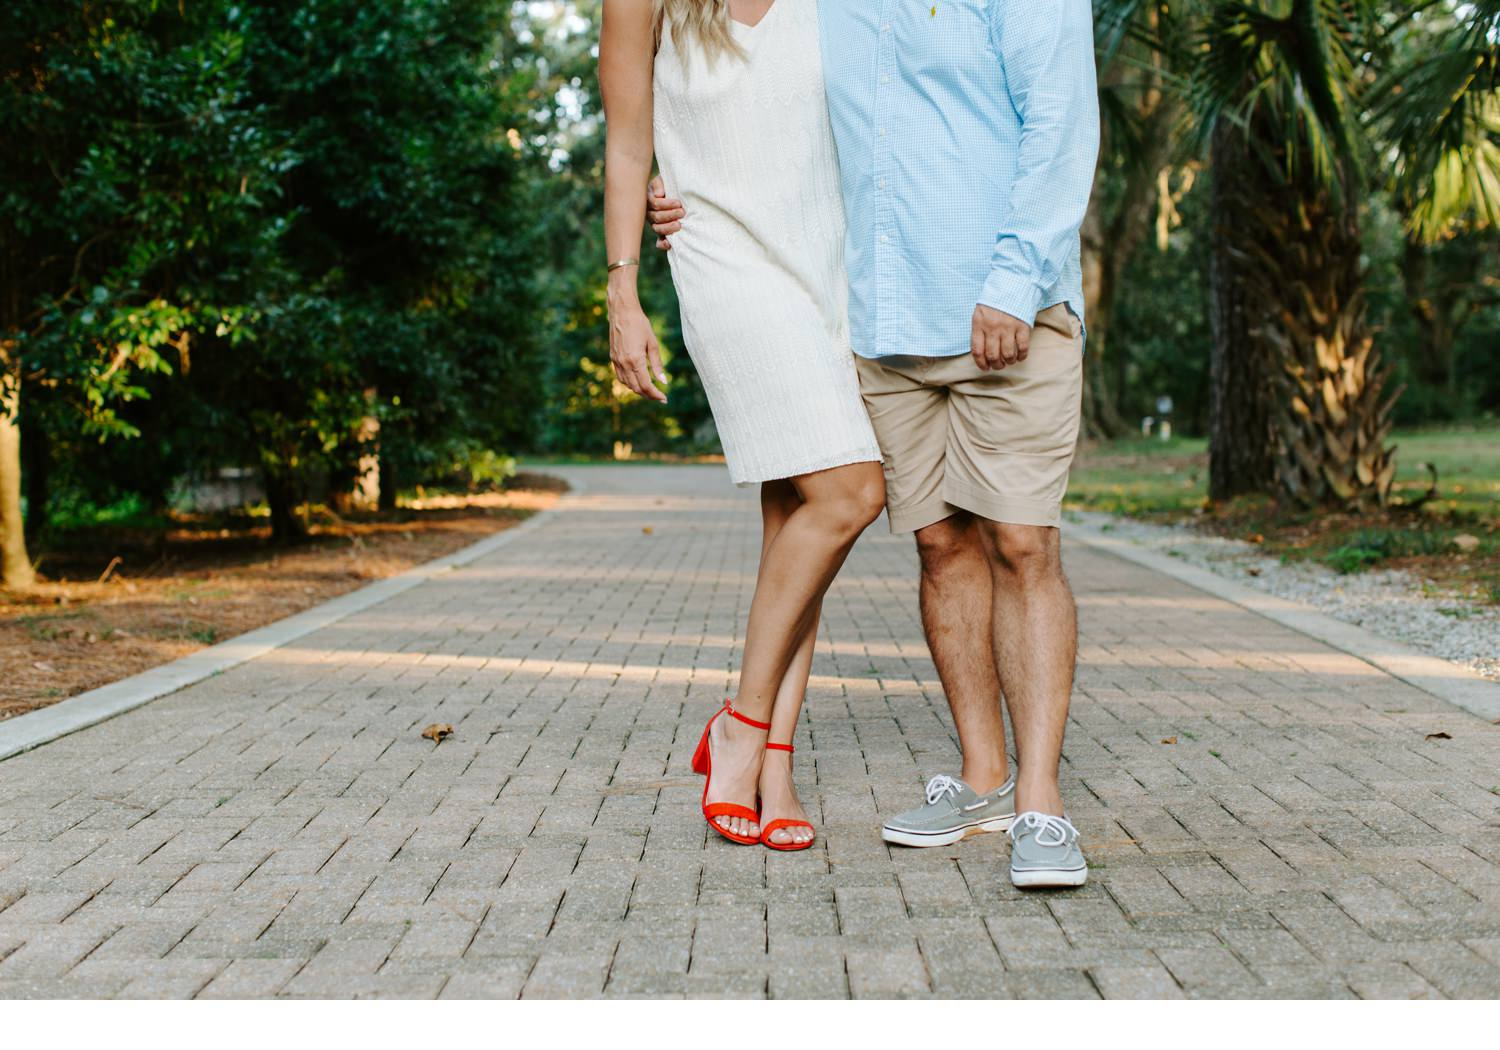 eden-gardens-state-park-engagement-session-stacie-and-jacob-6.jpg